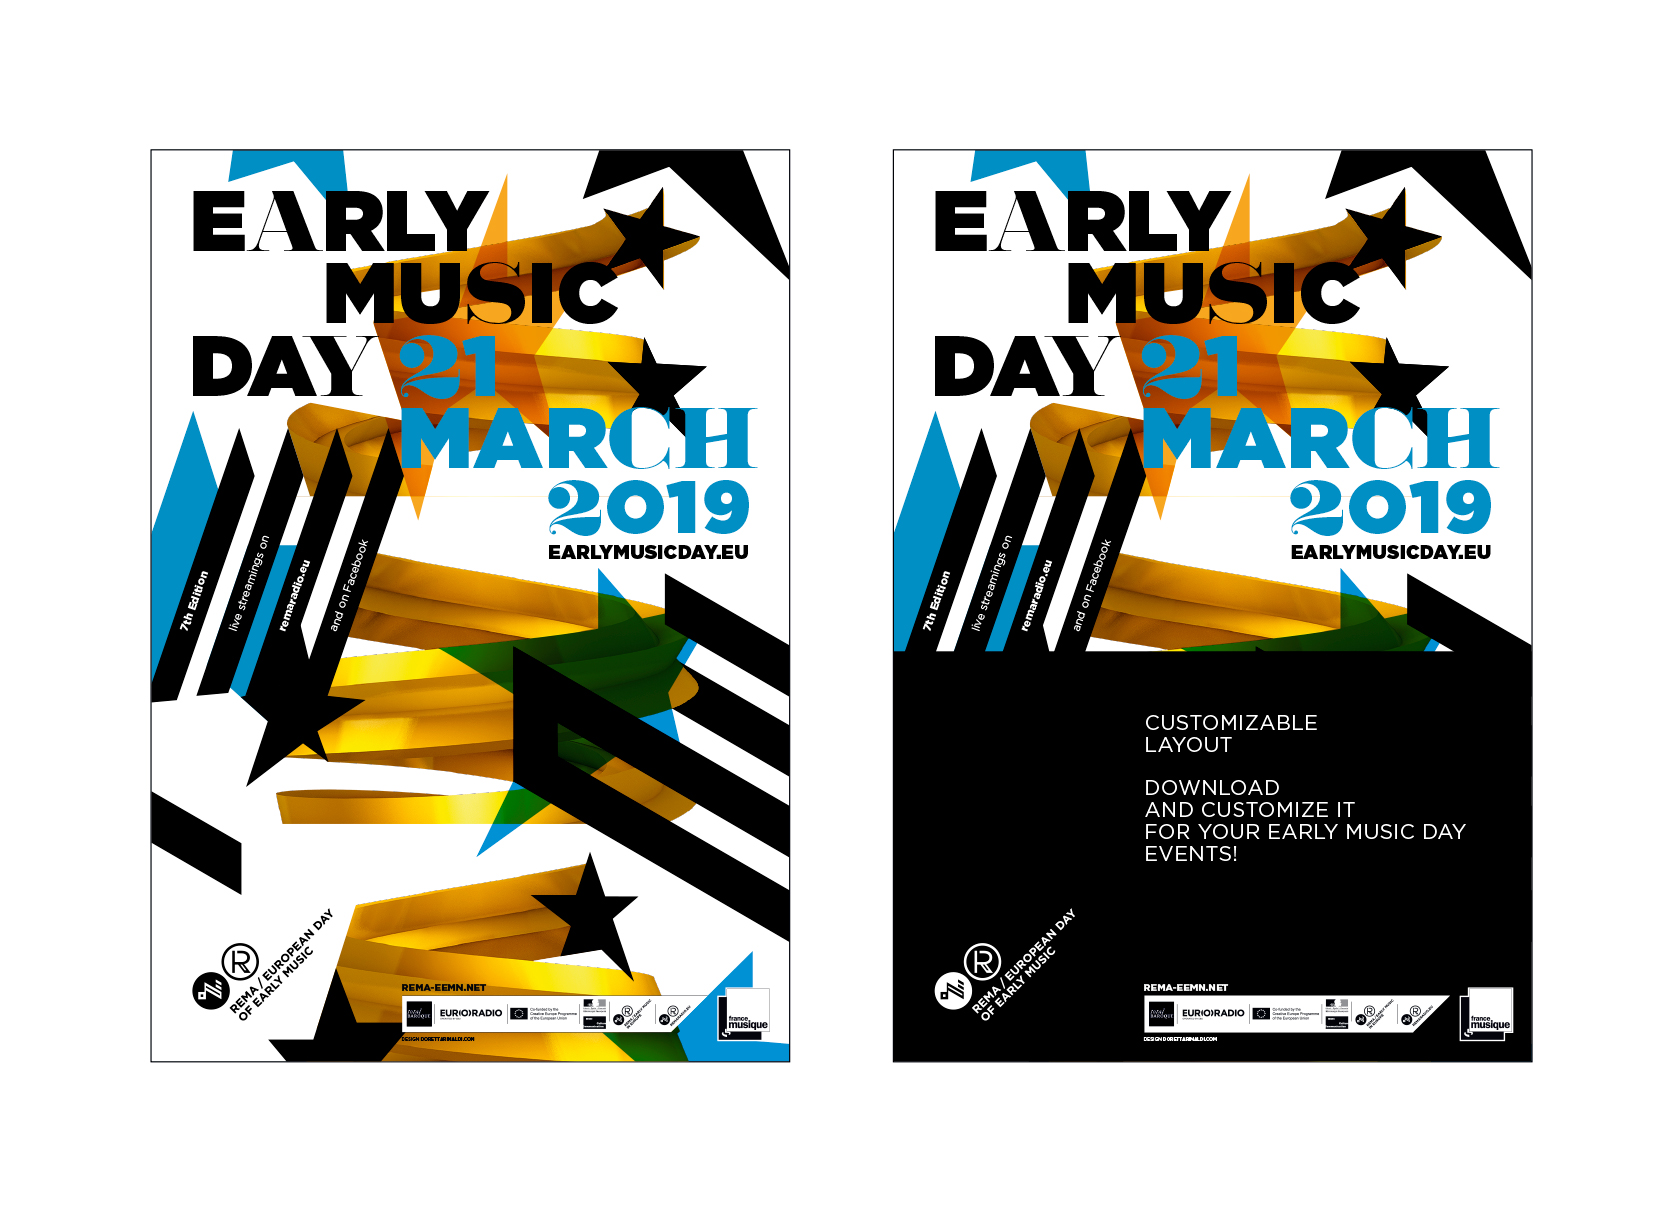 Early Music Day 2019